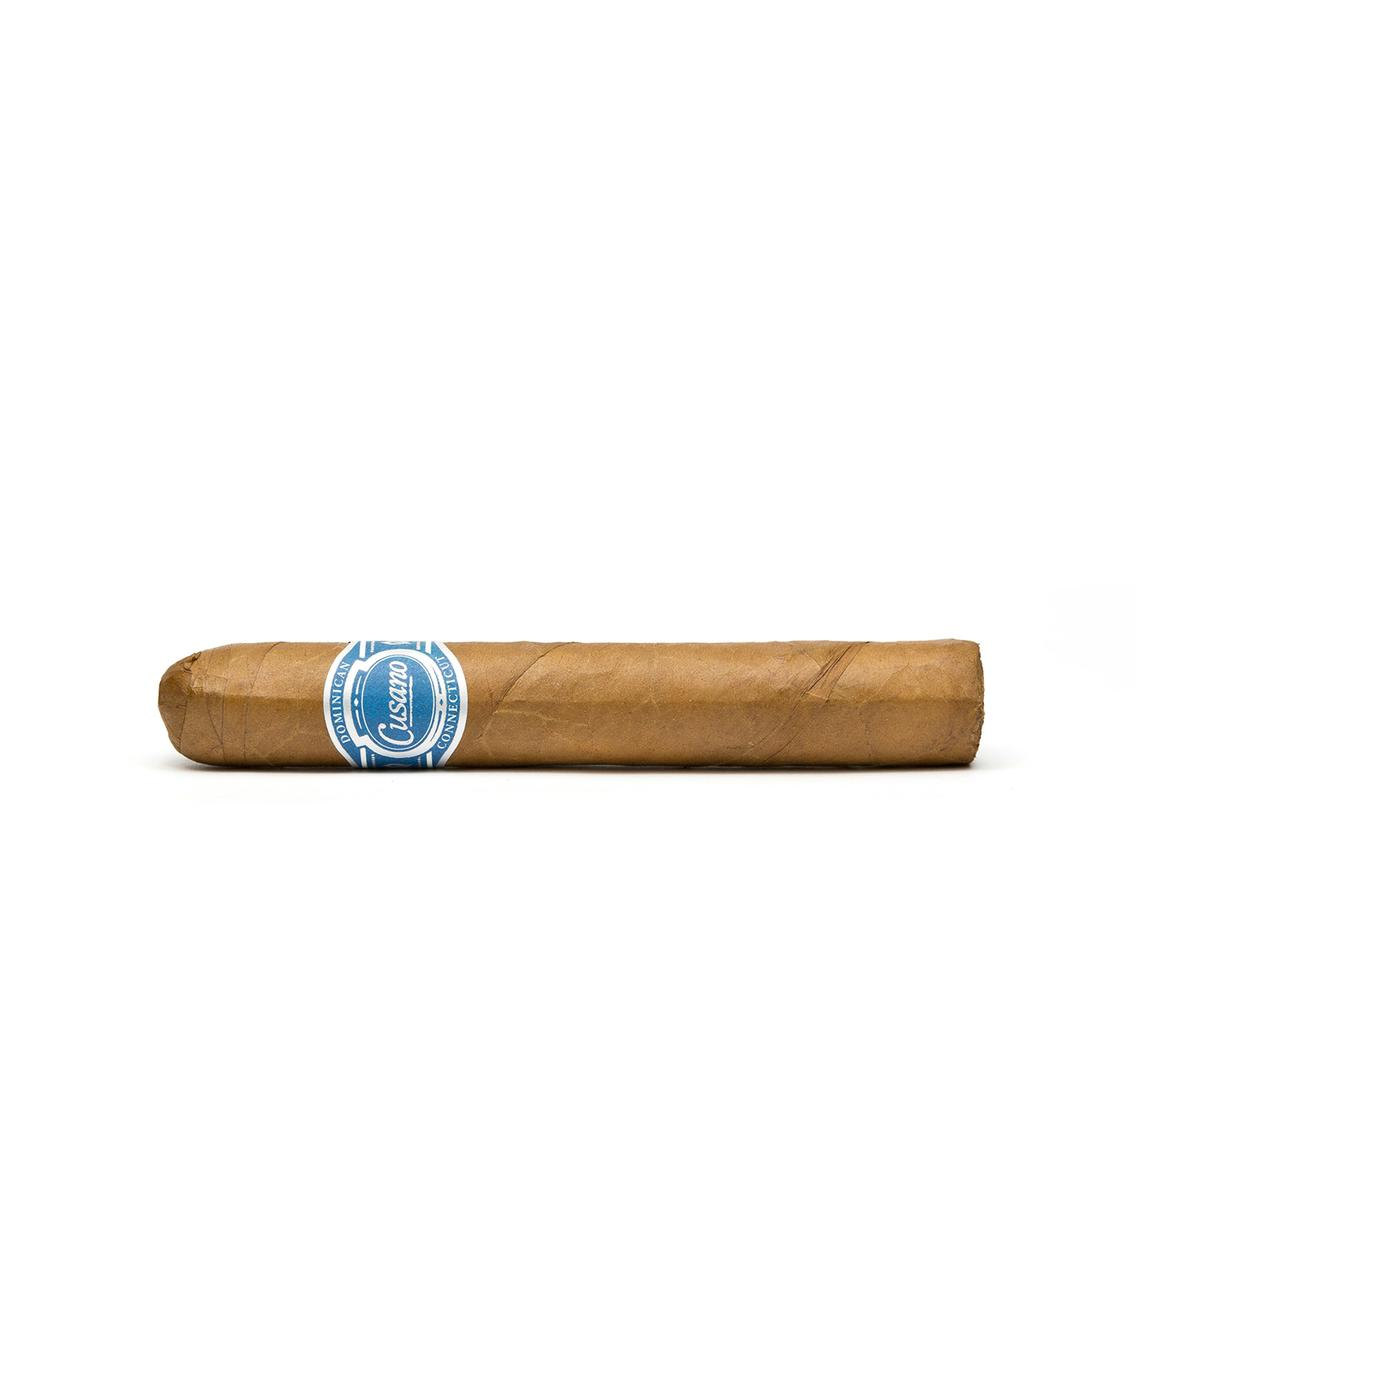 Cusano Premium Connecticut Robusto